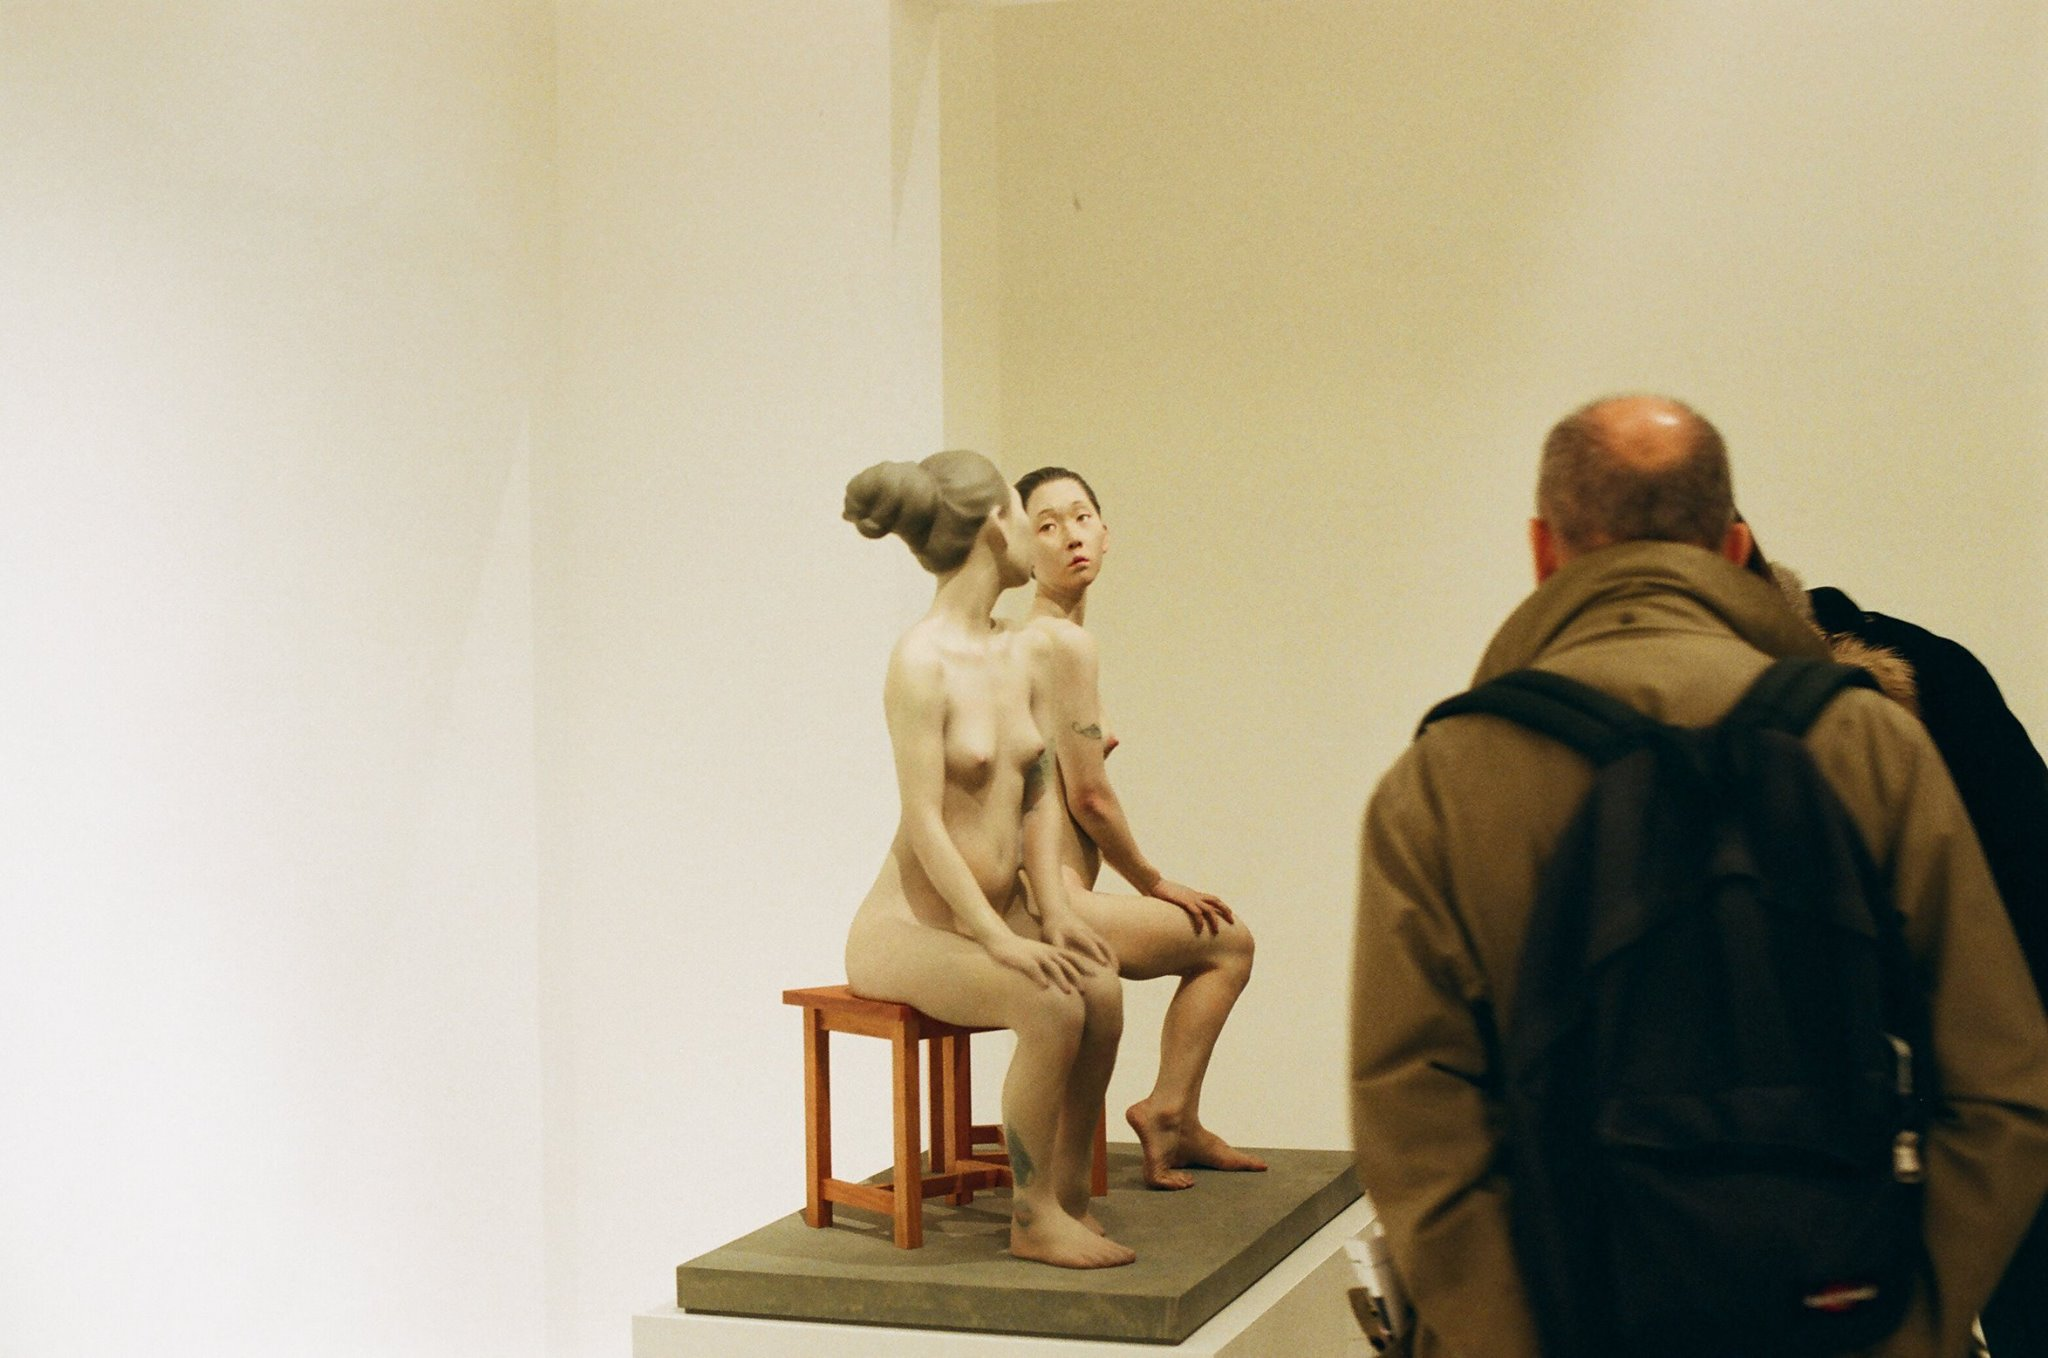 CHOI XOOANG – expo Paris 2014 – The Blind for the Blind